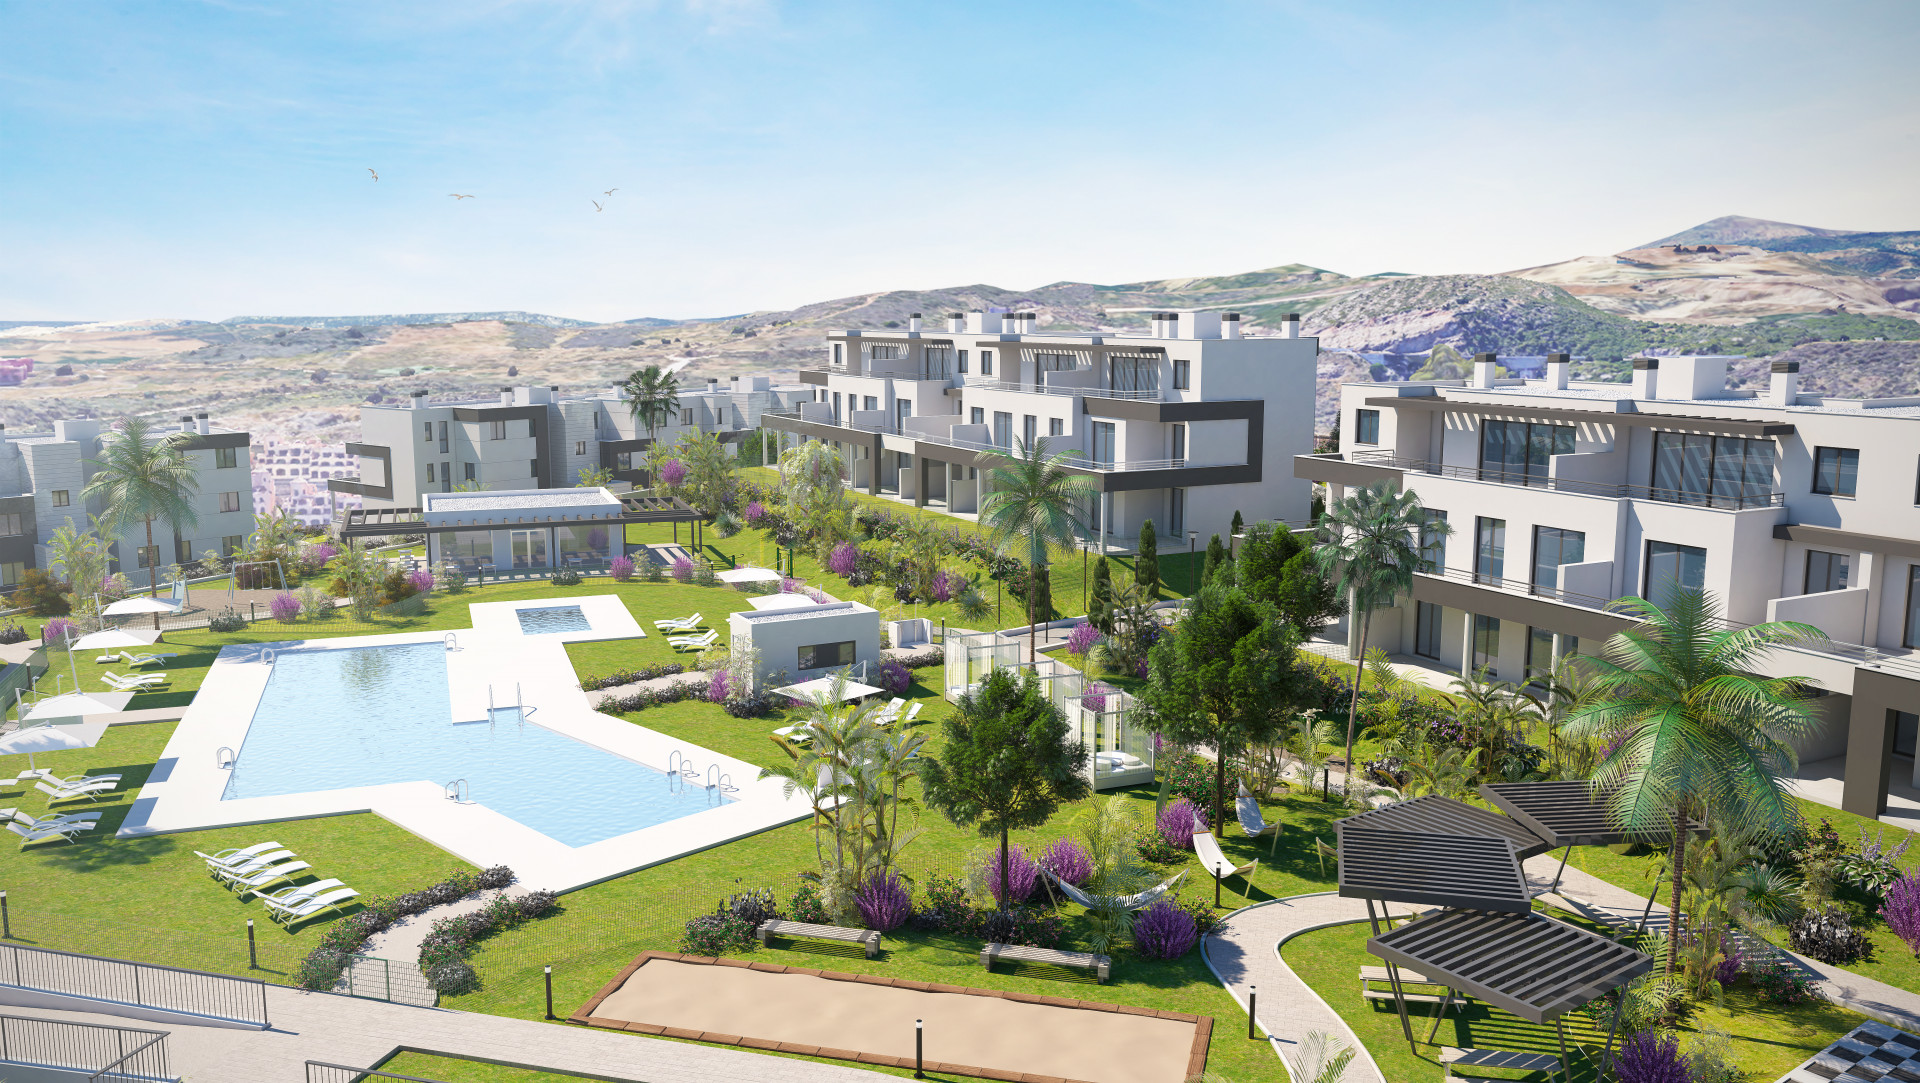 Brand new modern apartments for sale in Estepona